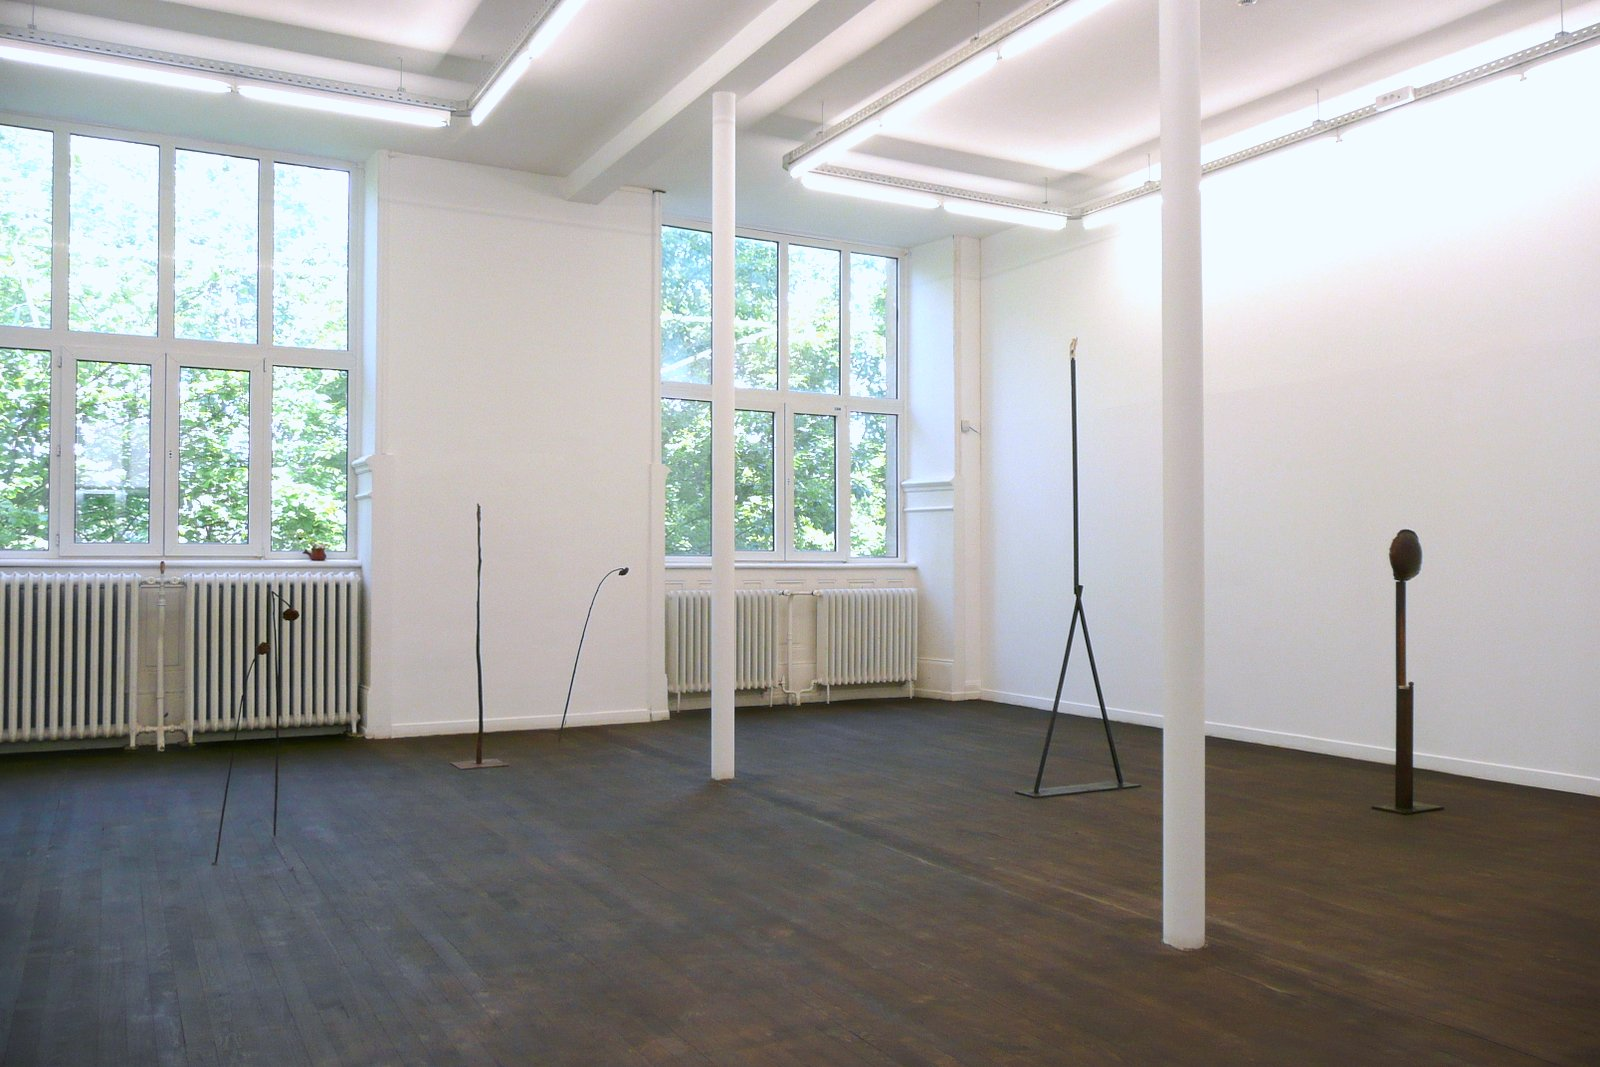 Luca Francesconi, Echo of the Moon solo show, installation view, Crac-Alsace, 2012 2